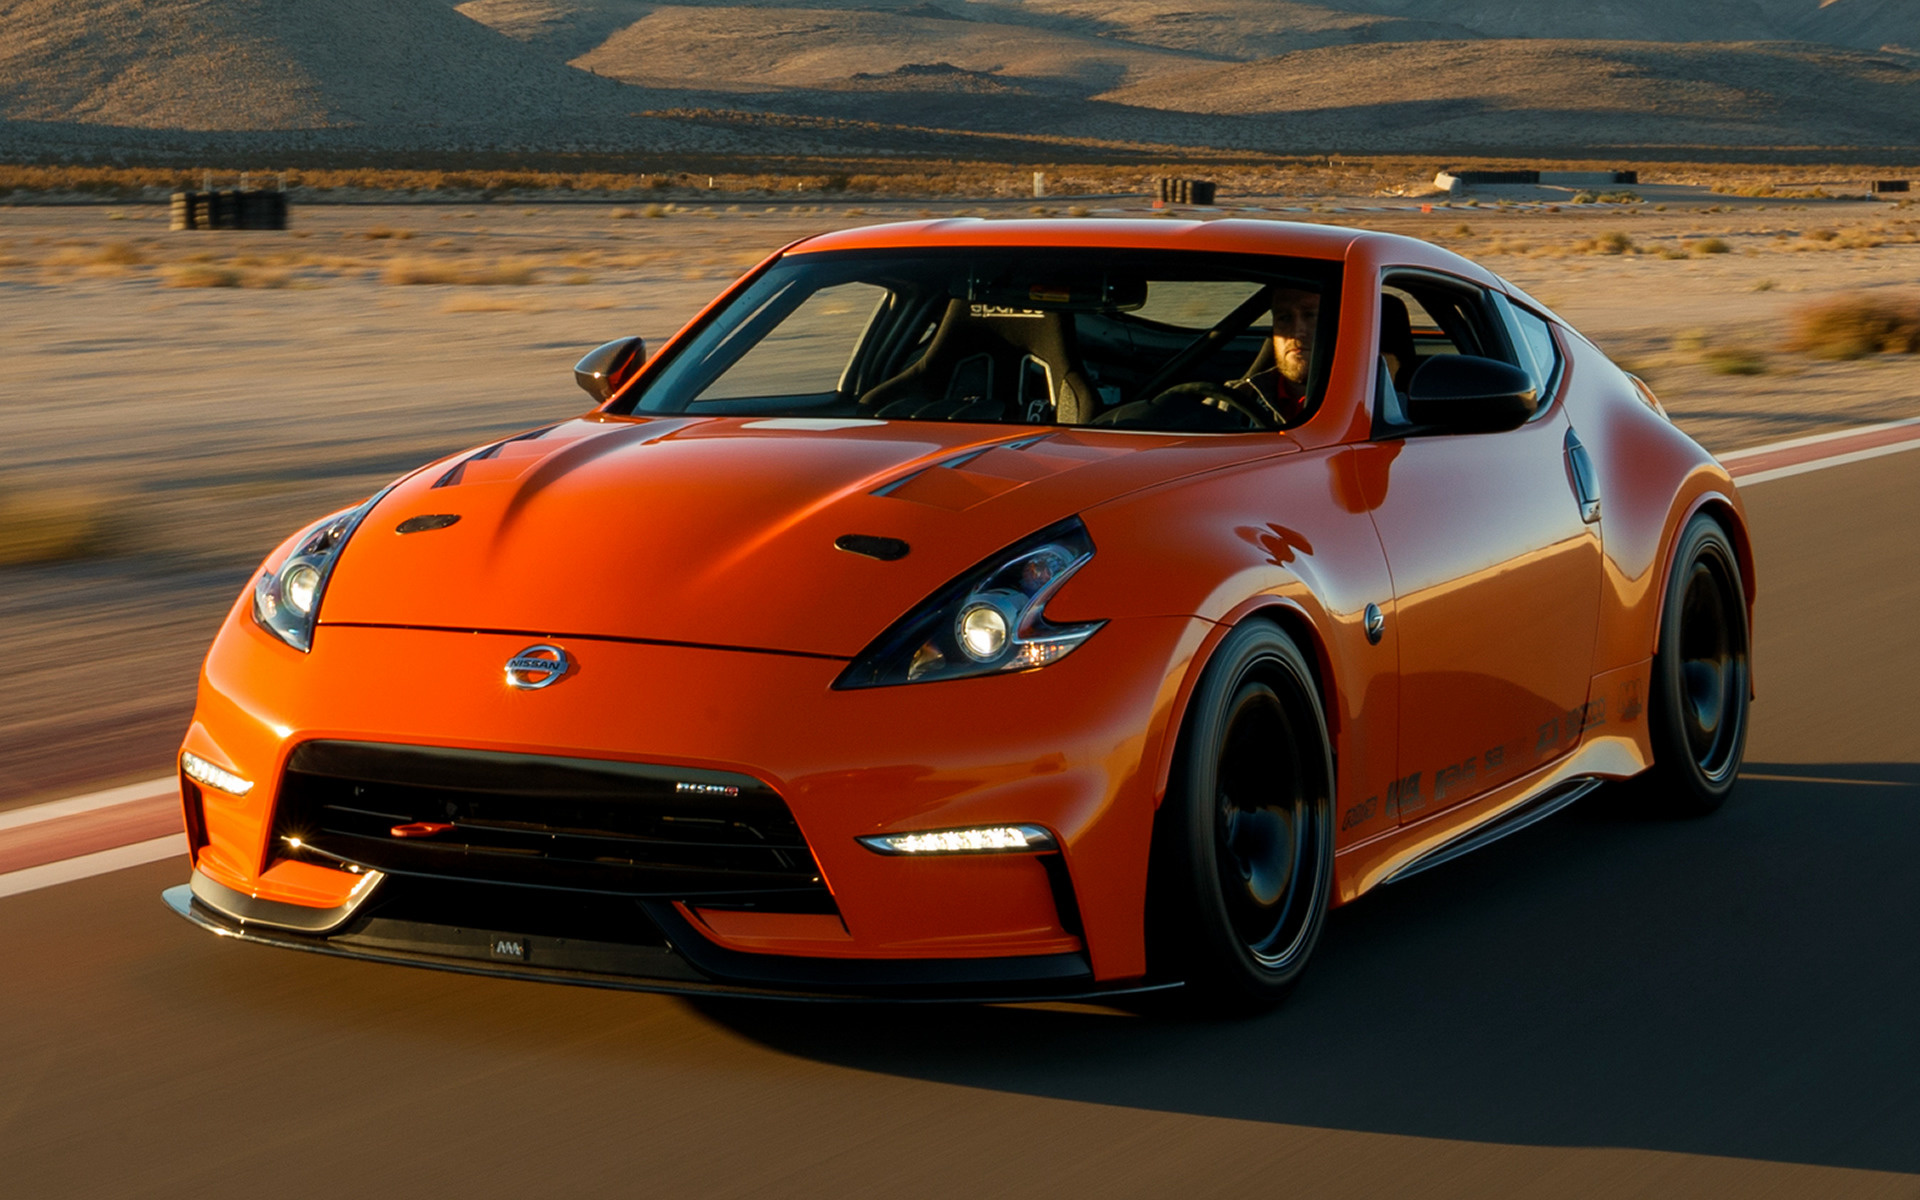 2018 Nissan 370Z Project Clubsport 23 - Wallpapers and HD ...